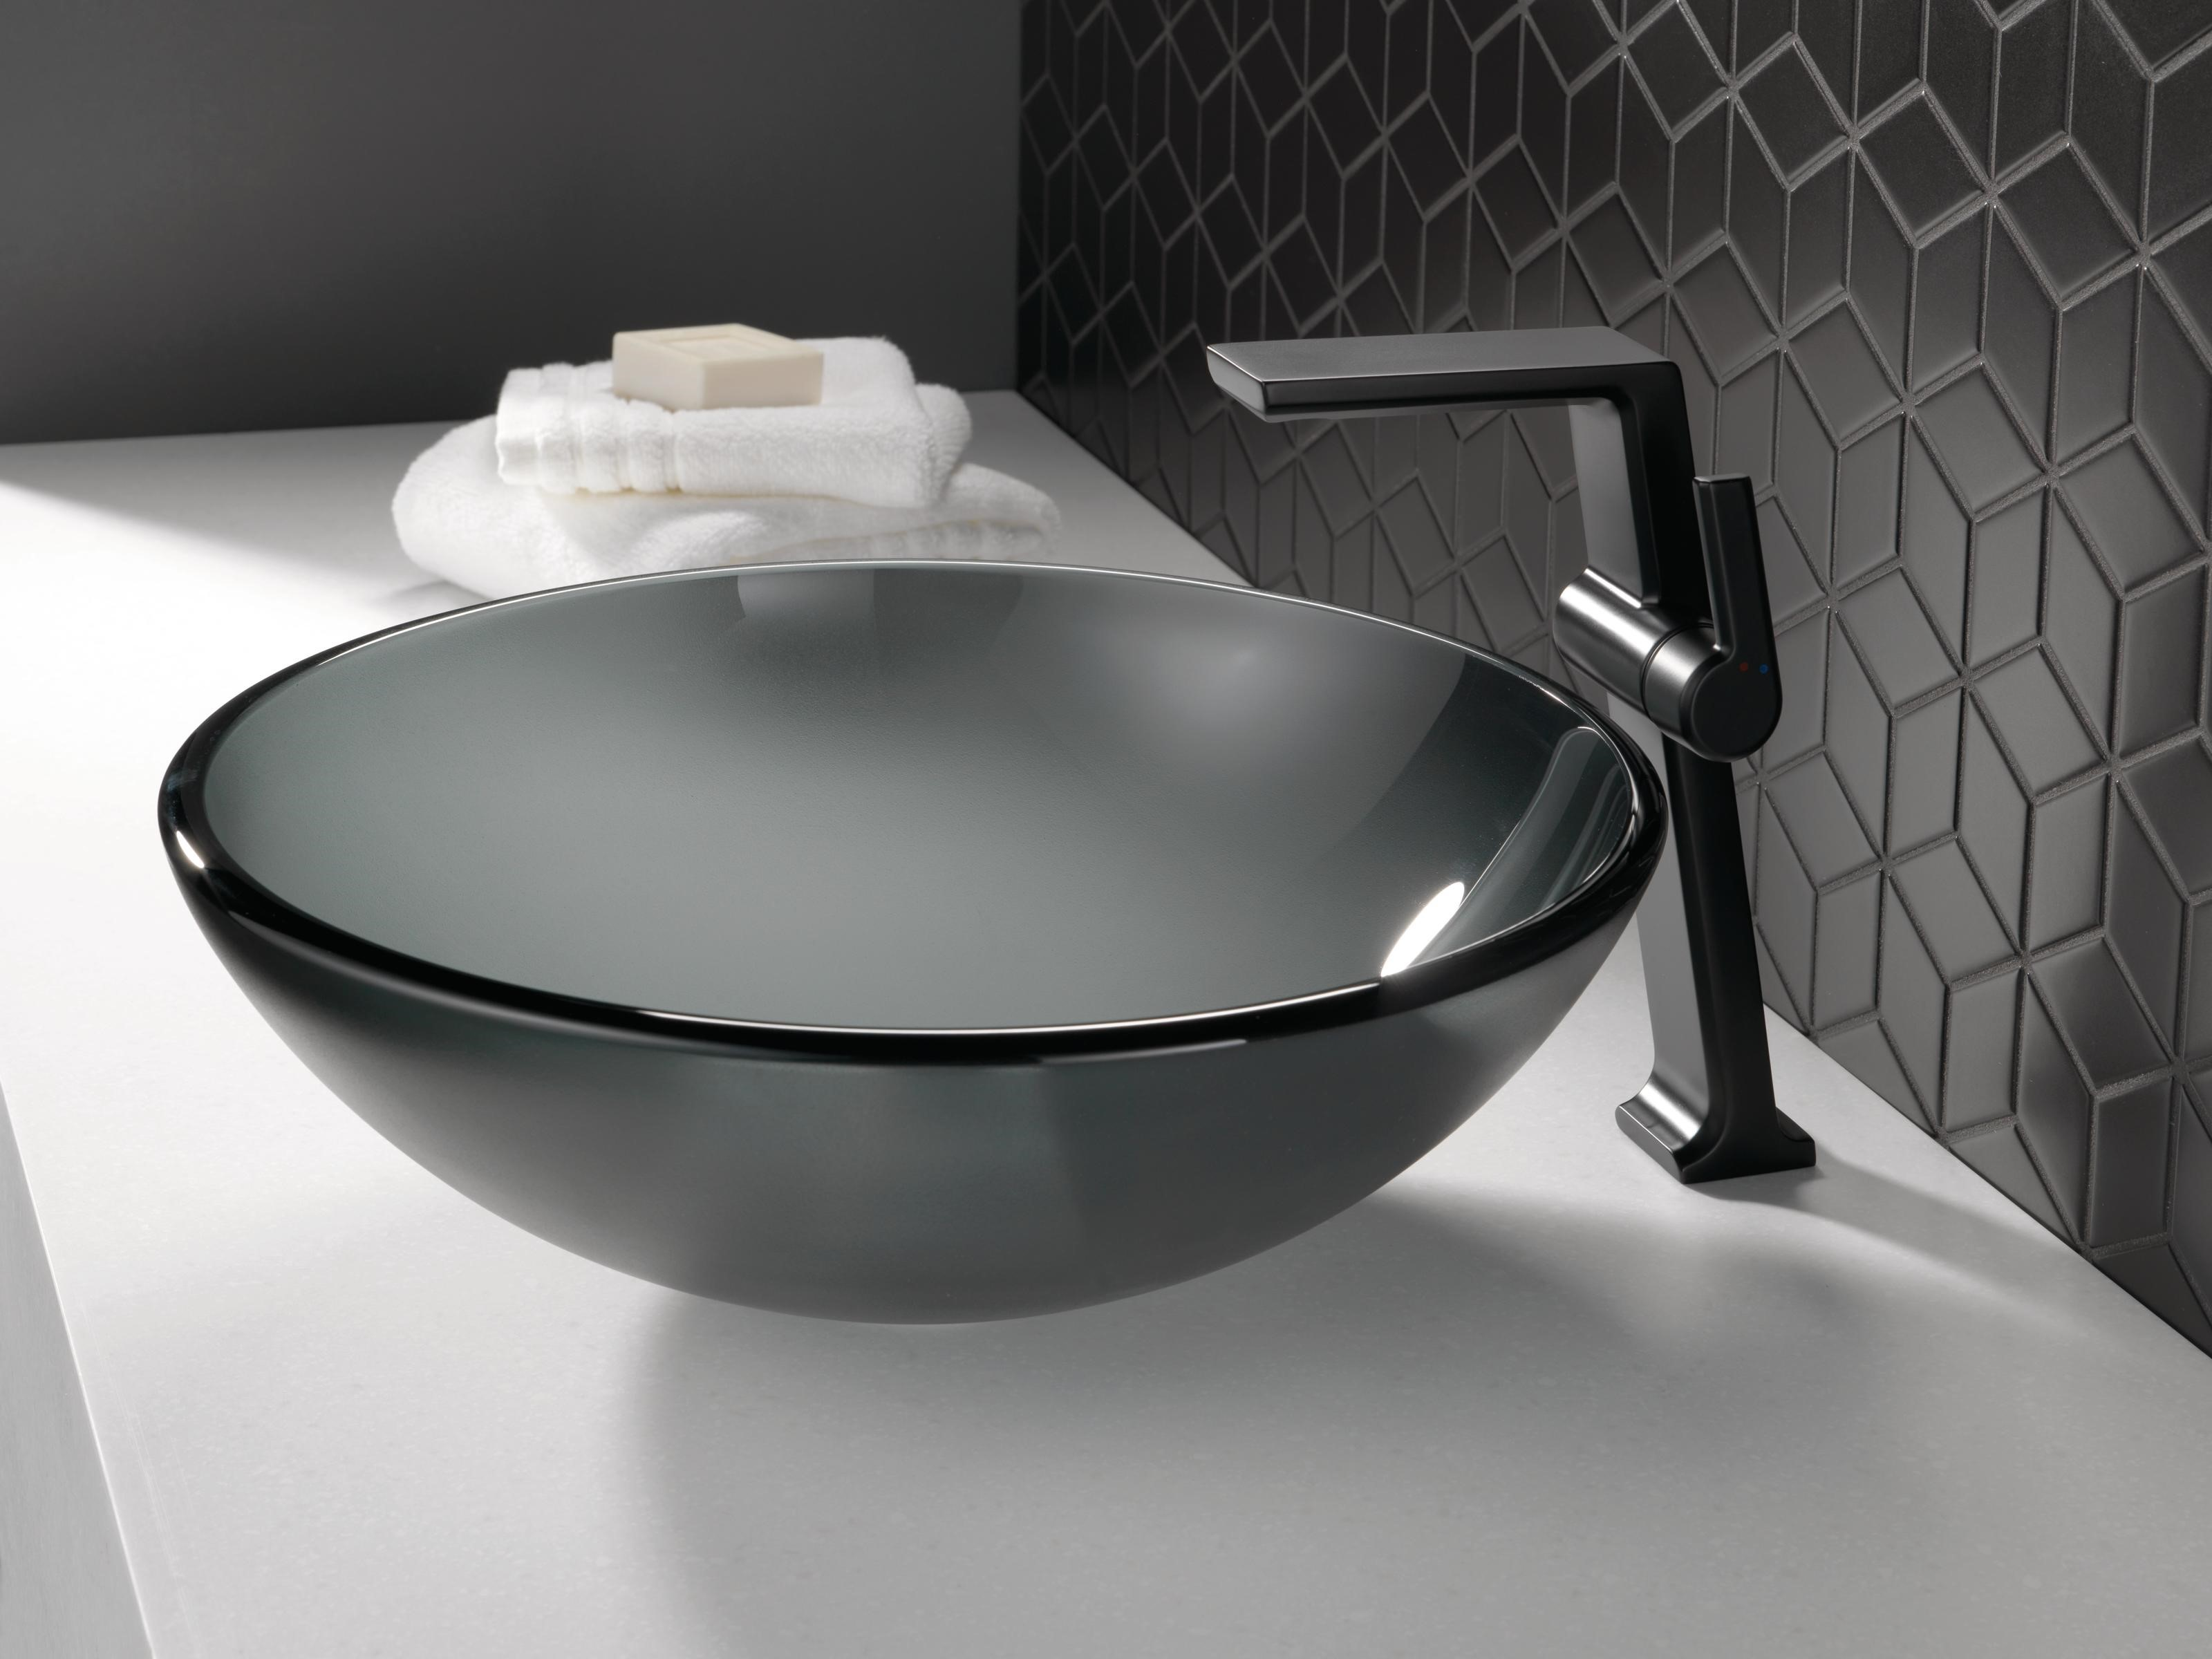 11 modern bath faucets for your next renovation residential products online